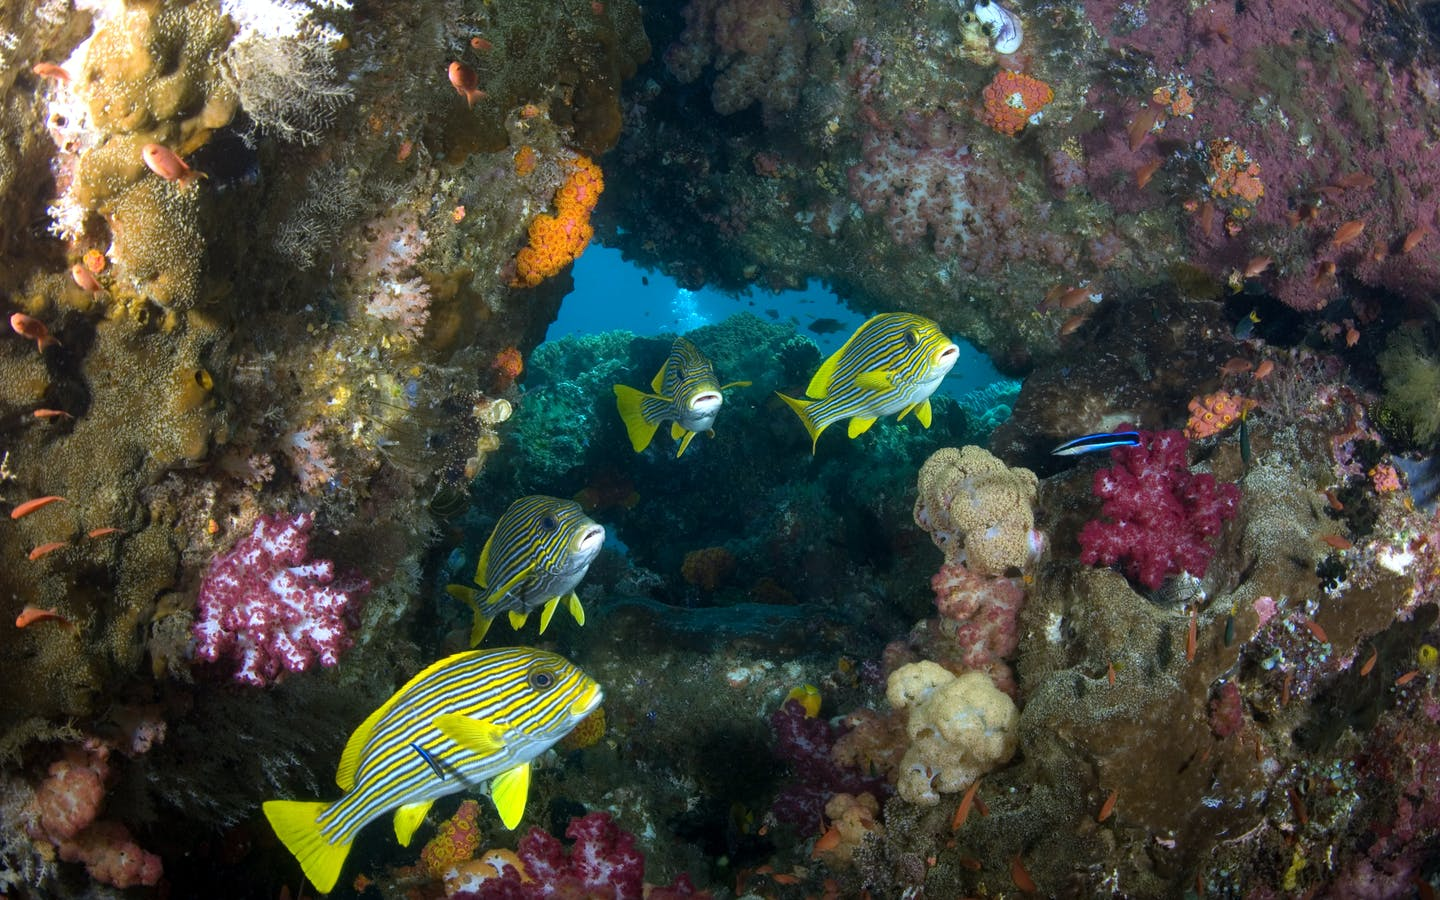 Yellow fish and coral reef in the ocean in Birds Head Seascape, Raja Ampat, Papua, Indonesia.